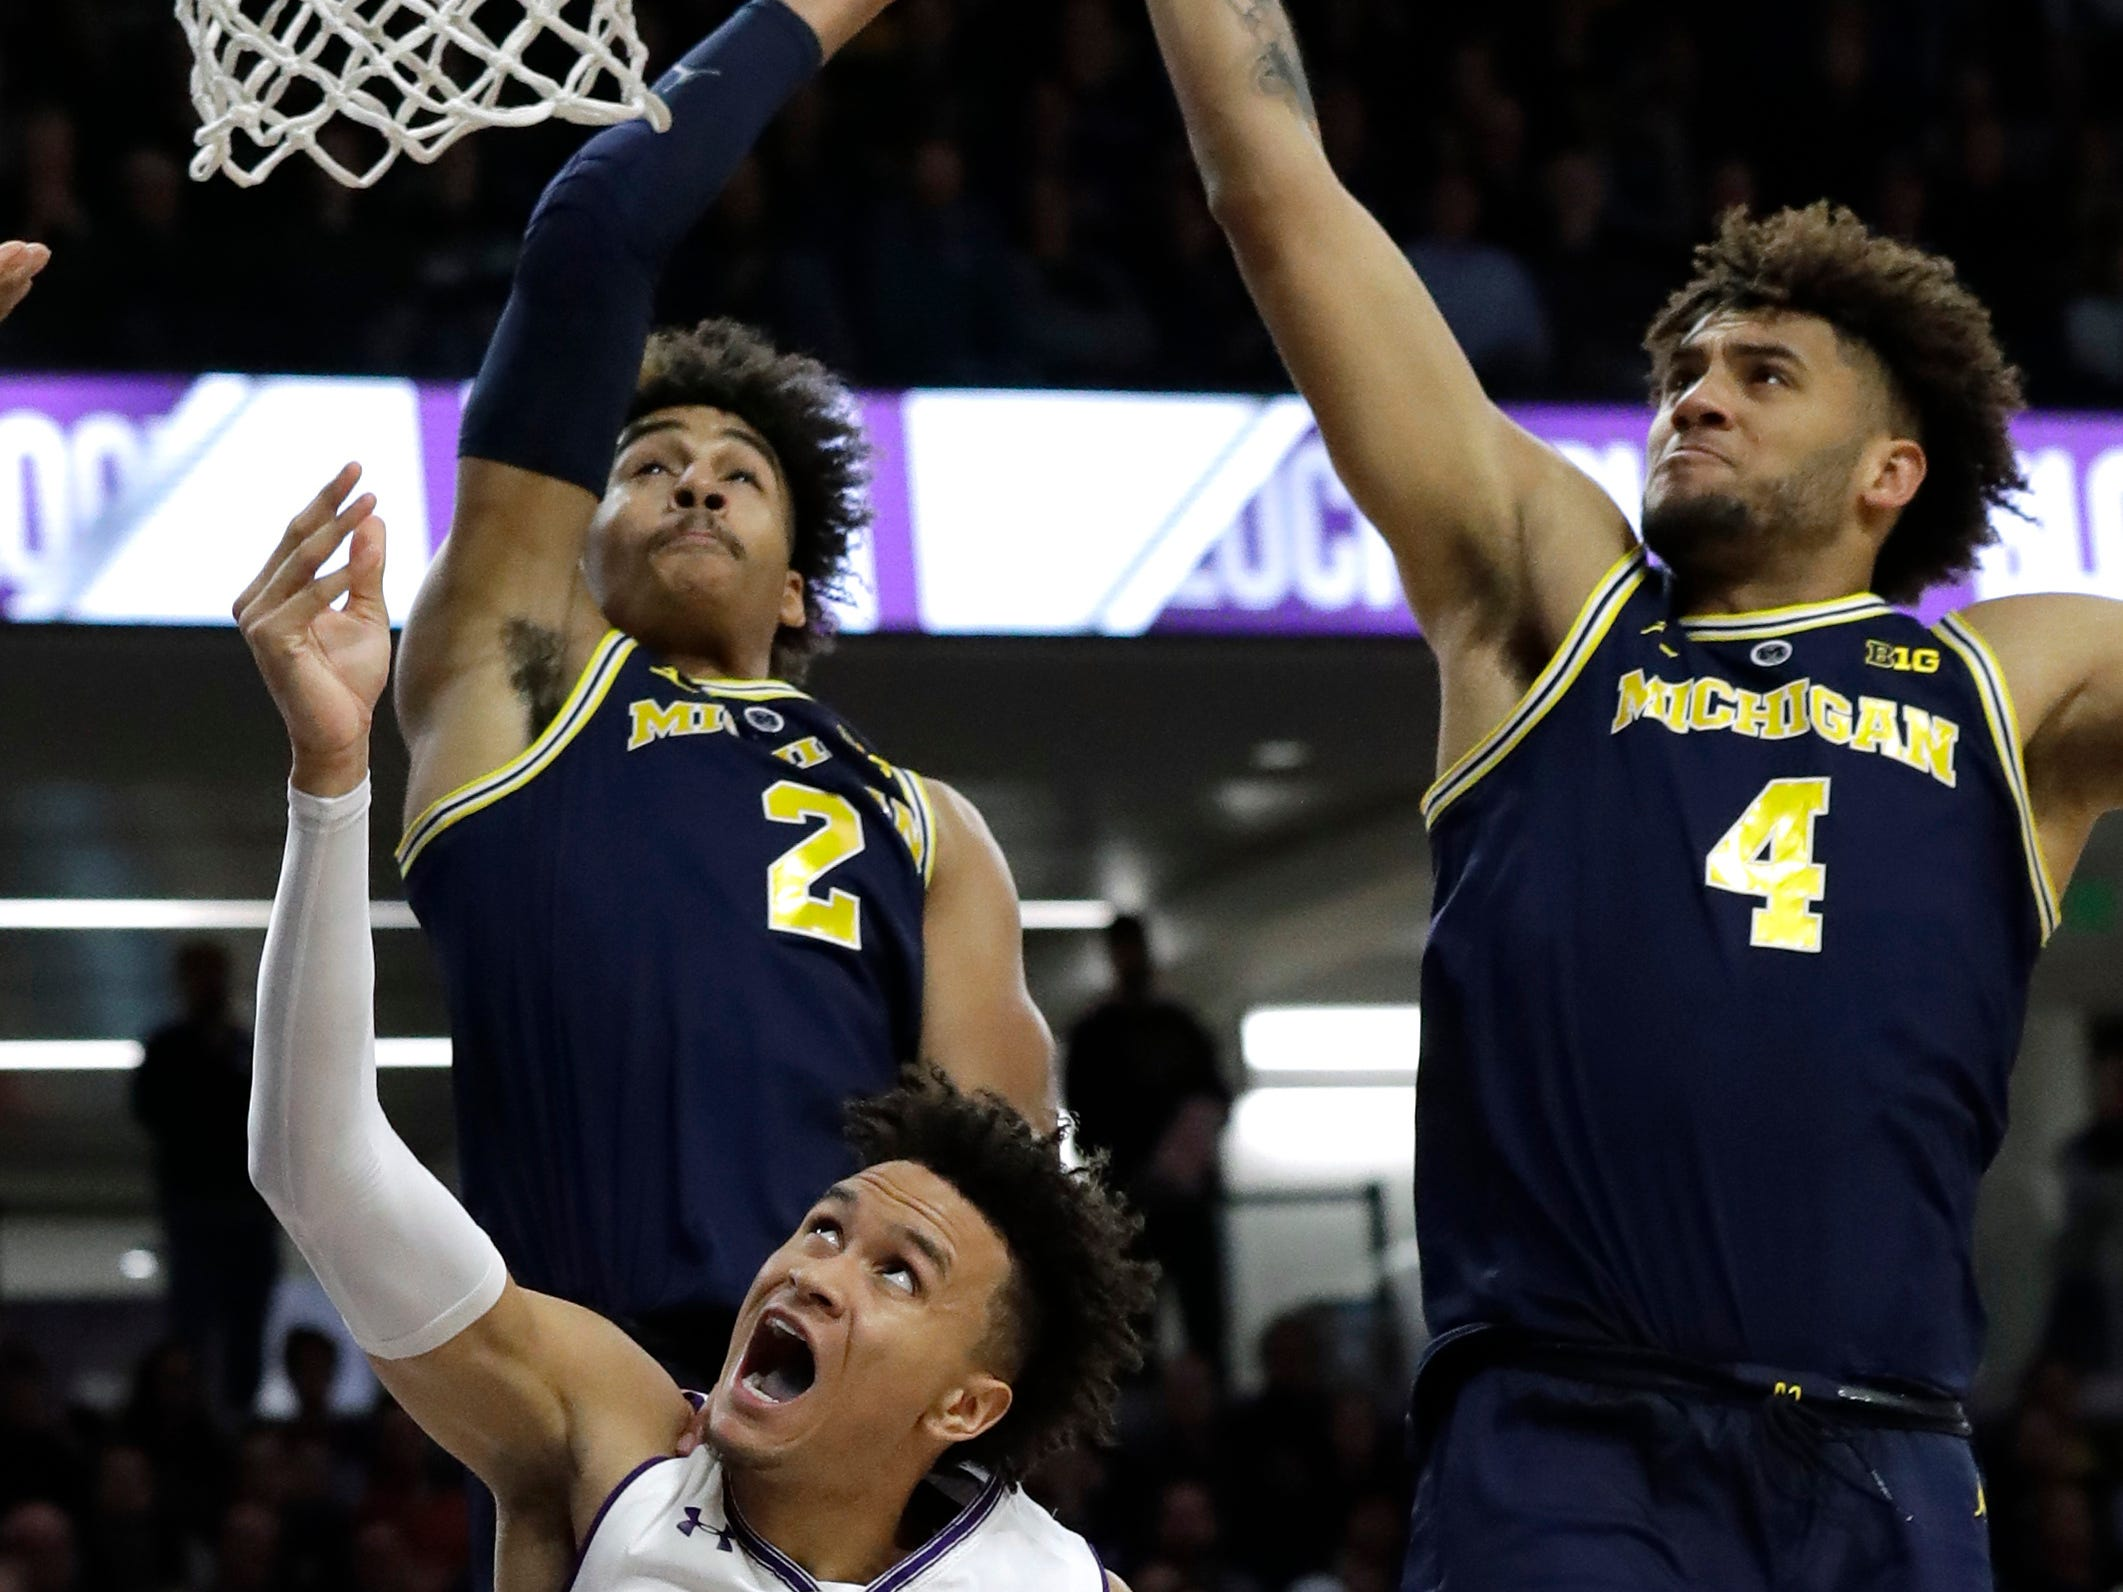 Northwestern forward A.J. Turner shoots against Michigan guard Jordan Poole (2) and forward Isaiah Livers during the second half of U-M's 62-60 win on Tuesday, Dec. 4, 2018, in Evanston, Ill.